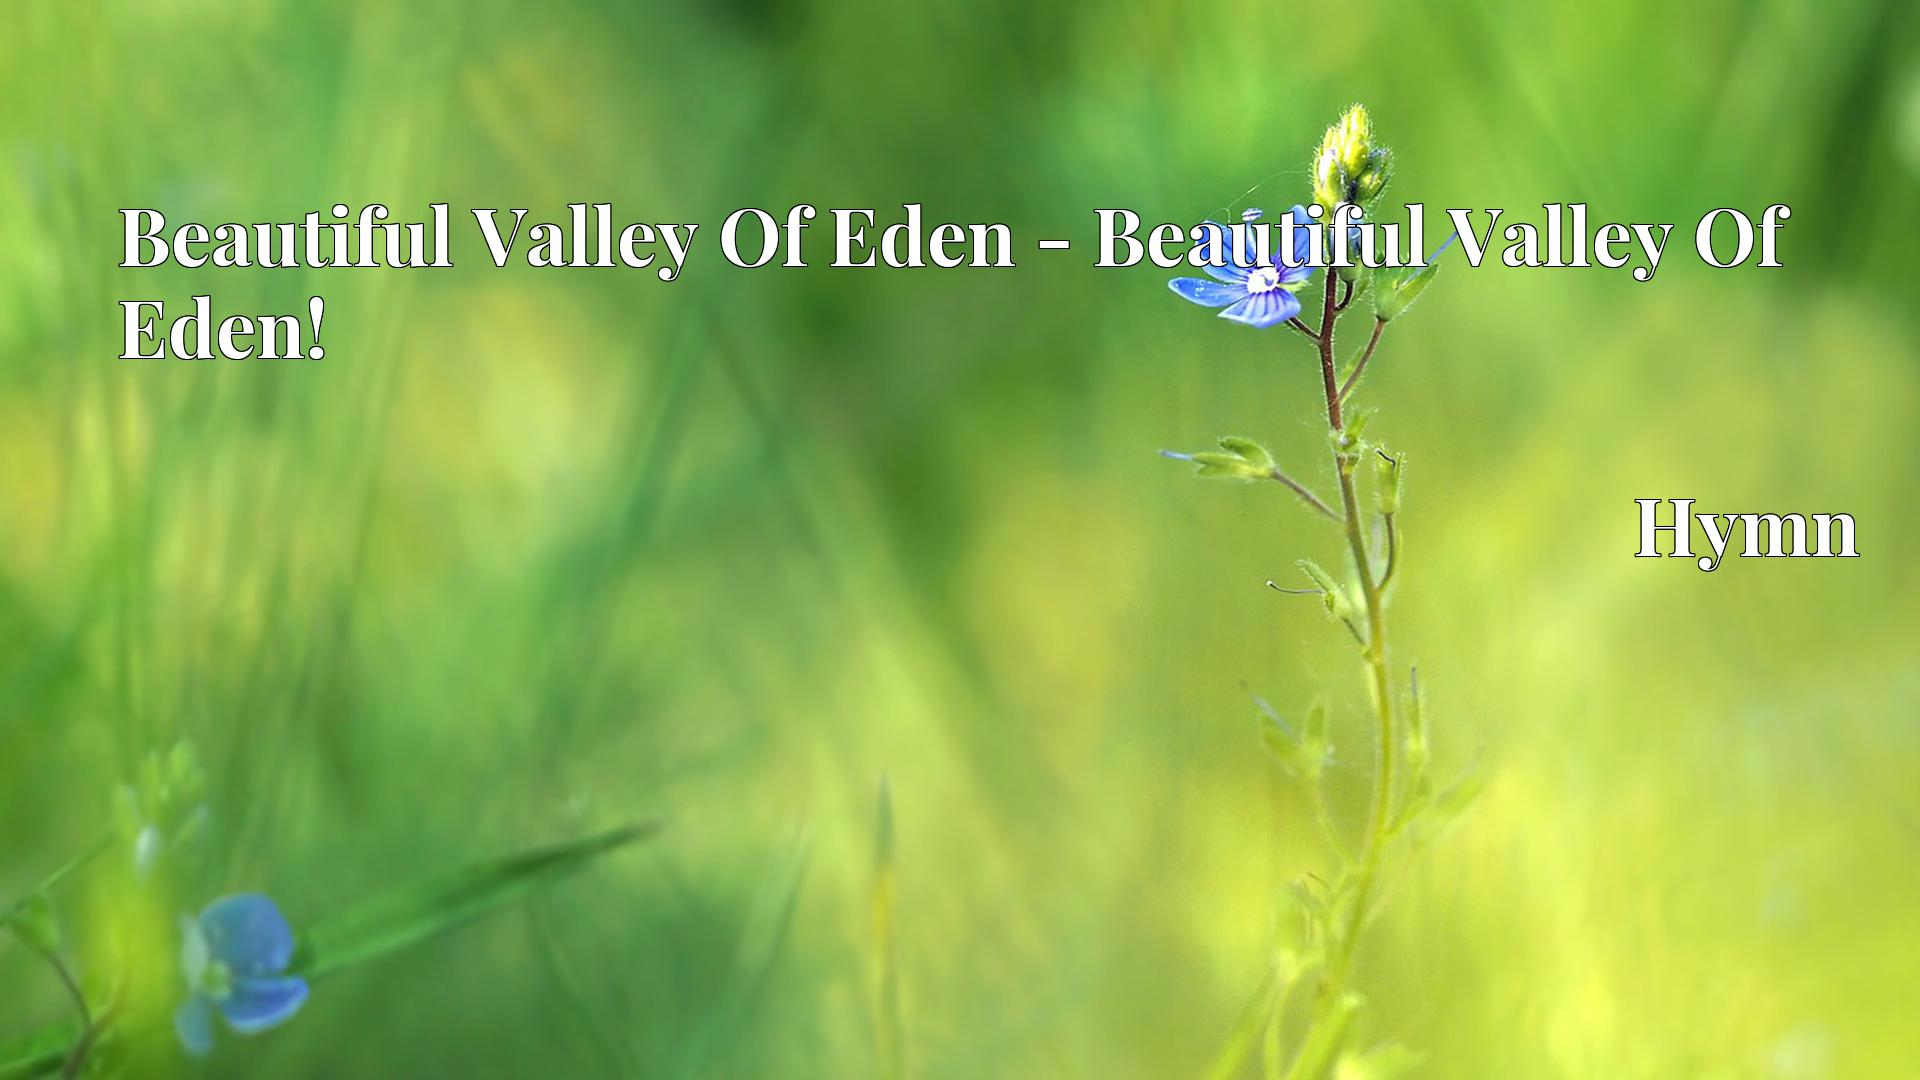 Beautiful Valley Of Eden - Beautiful Valley Of Eden! - Hymn